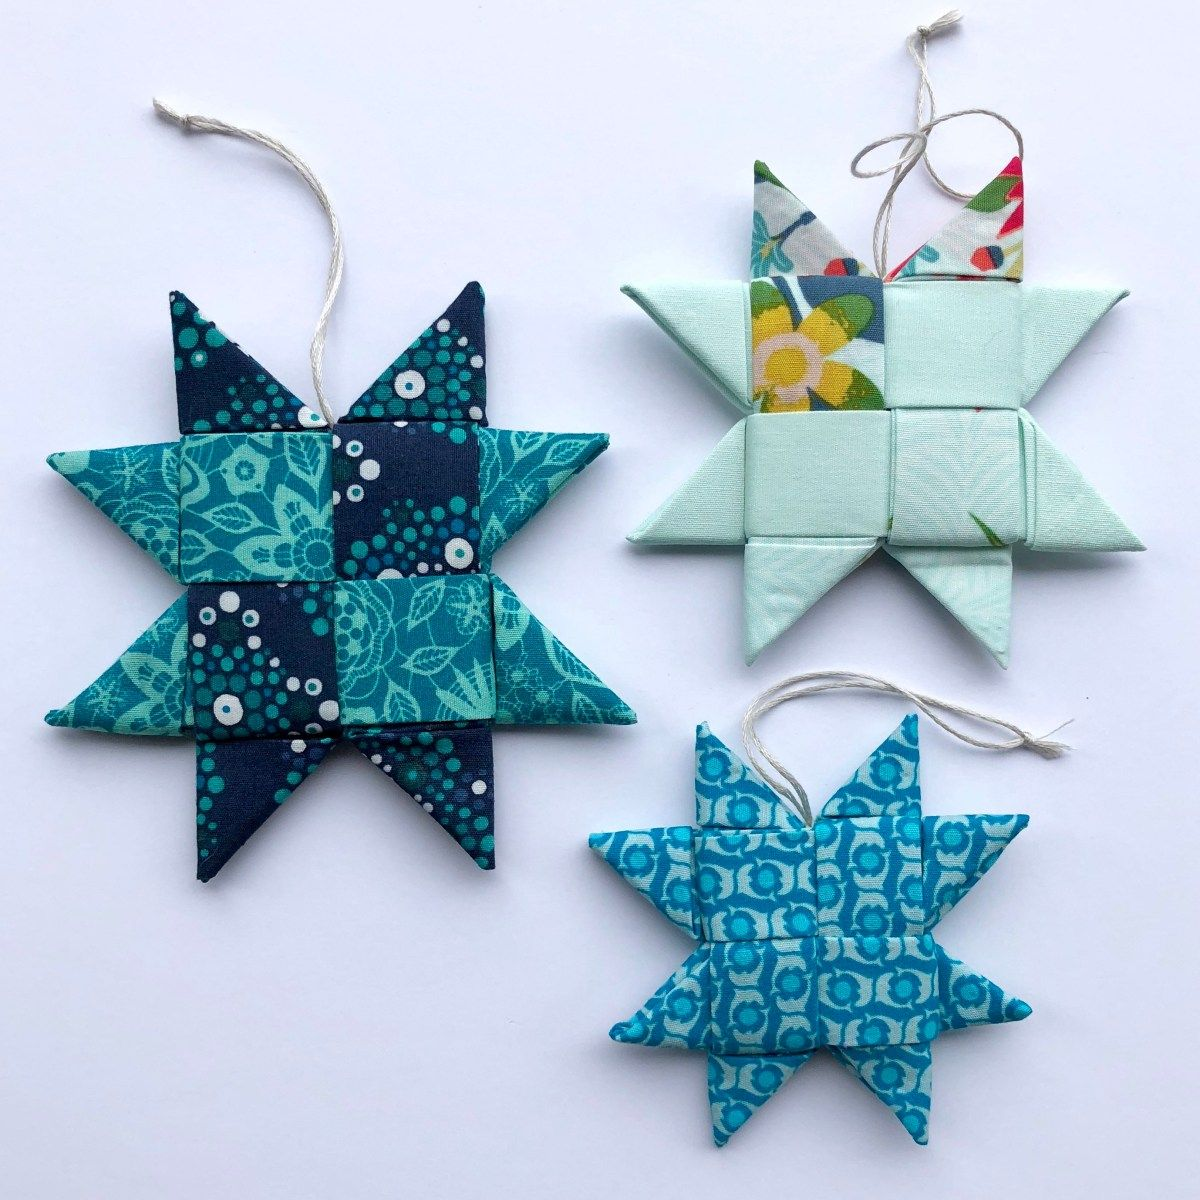 Scandinavian Folded Fabric Star Ornament W Video Tutorial Needs 4 For Each Piece In 2020 Fabric Christmas Ornaments Sewn Christmas Ornaments Folded Fabric Ornaments